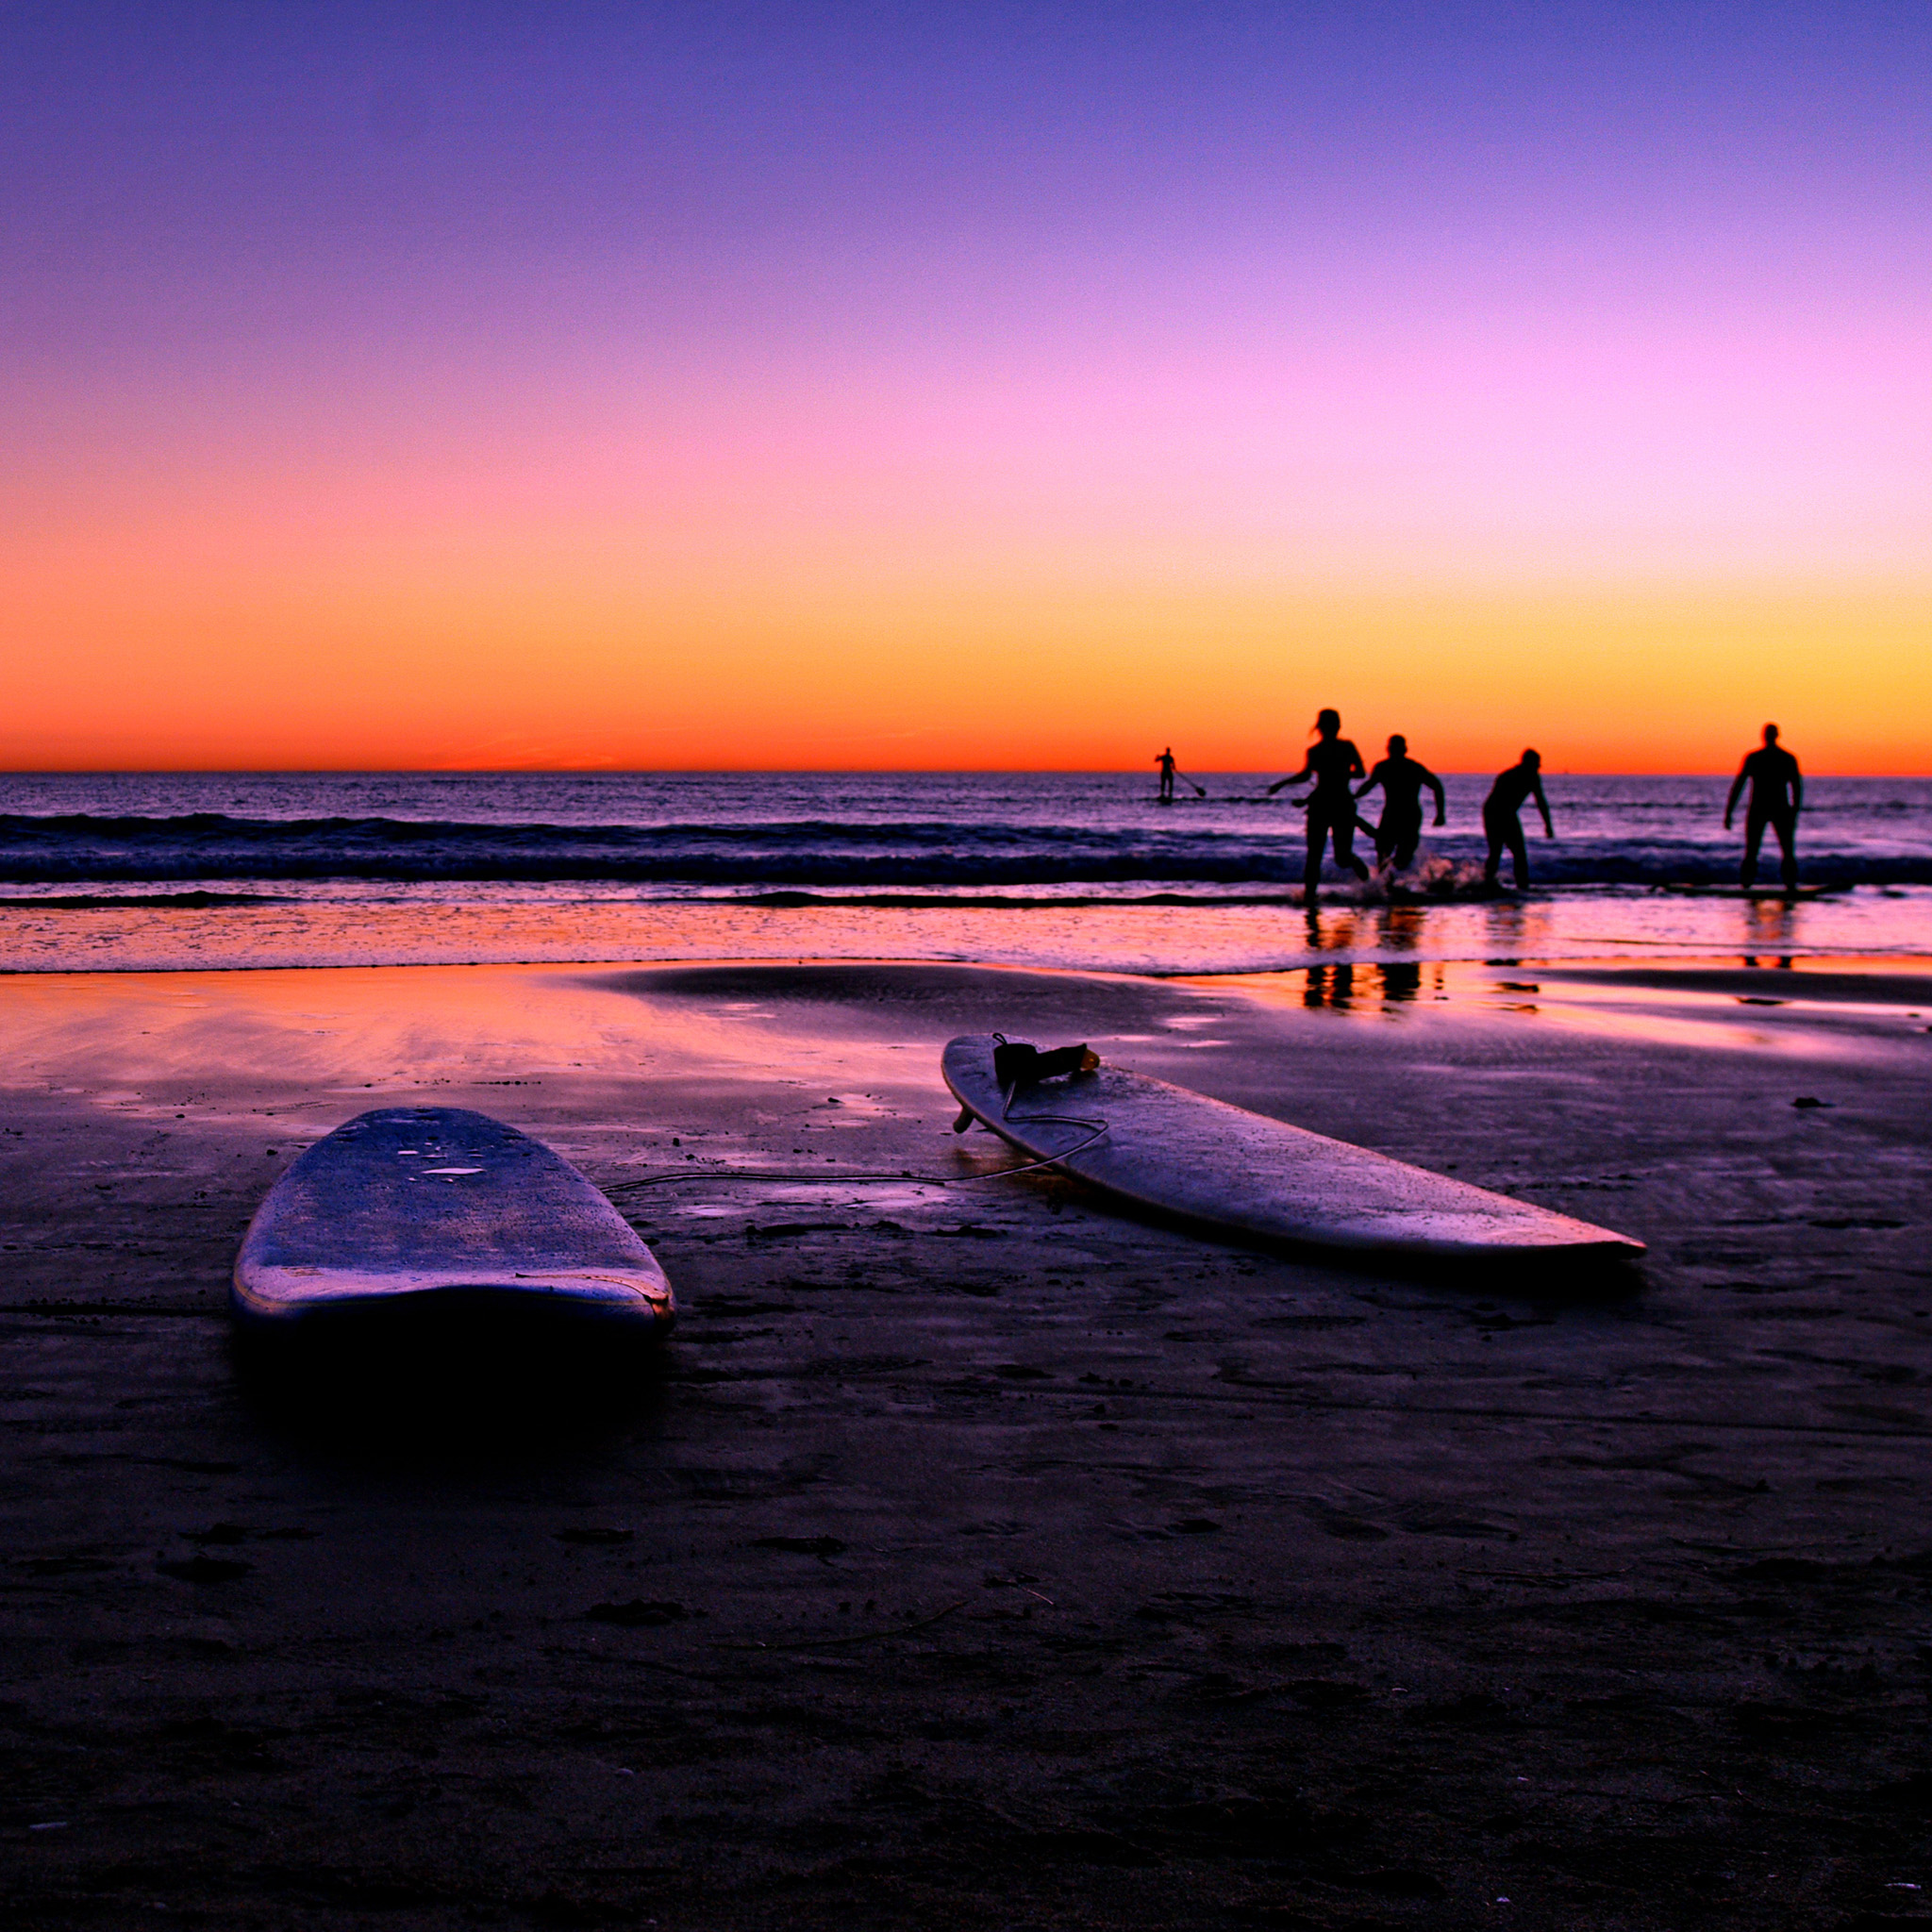 surfers at sunset ipad wallpaper